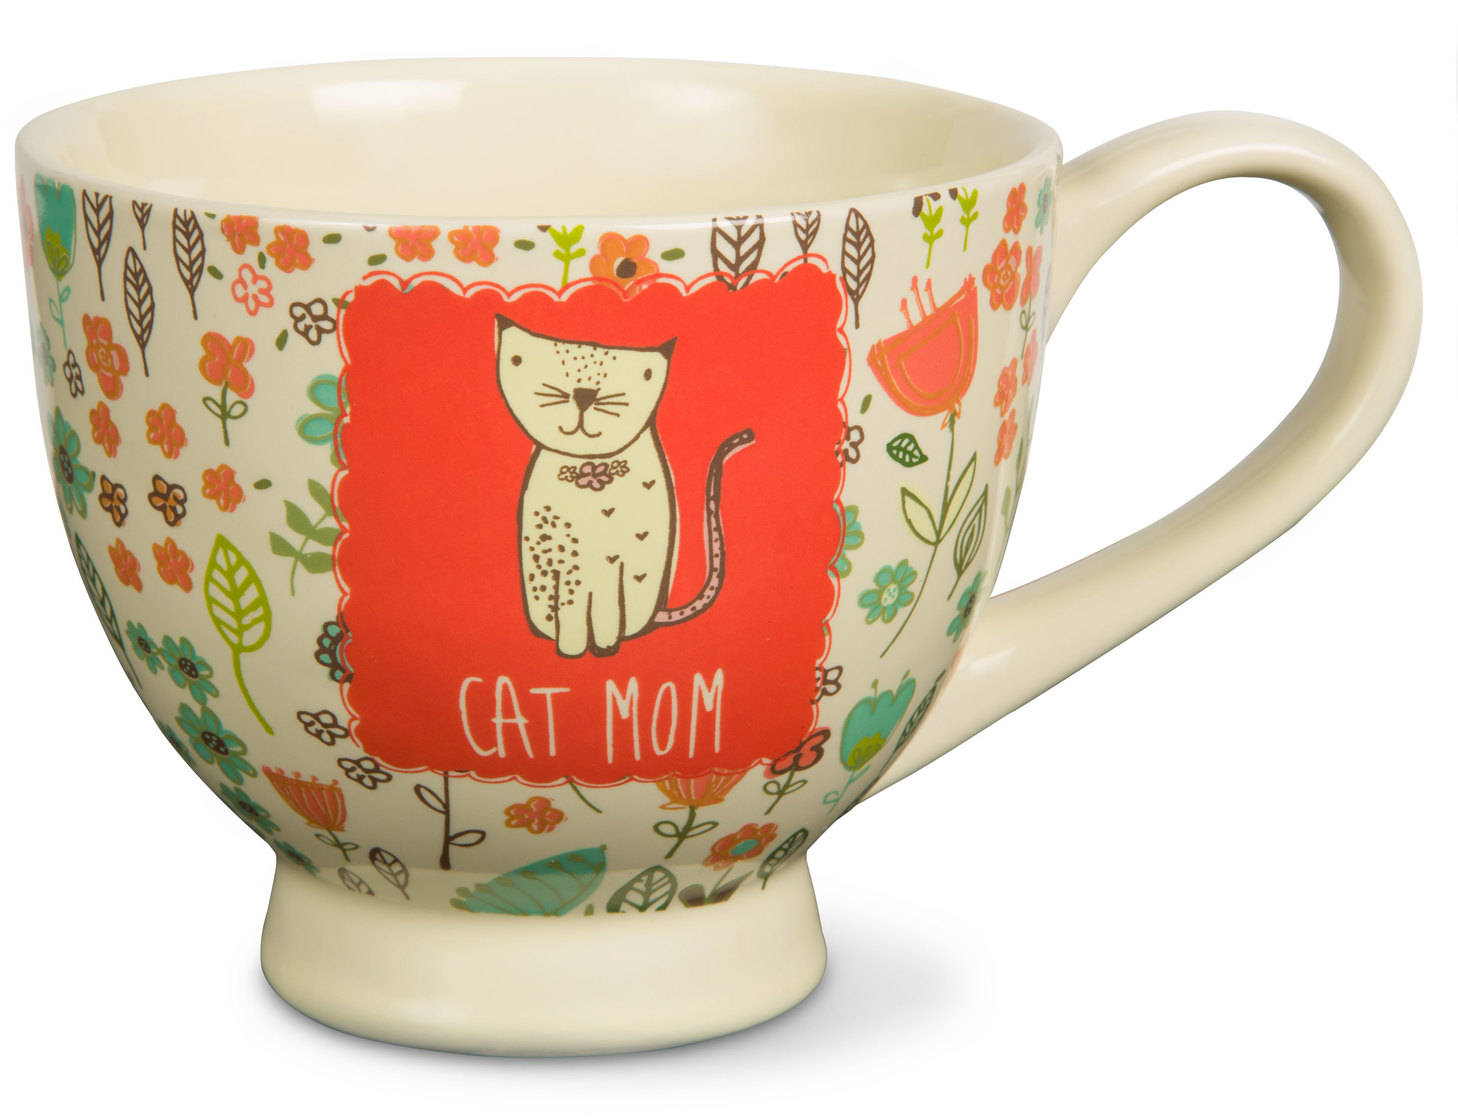 A Mother's Love Cat Mom Floral Soup Bowl Mug 17 oz by Pavilion Gift Company